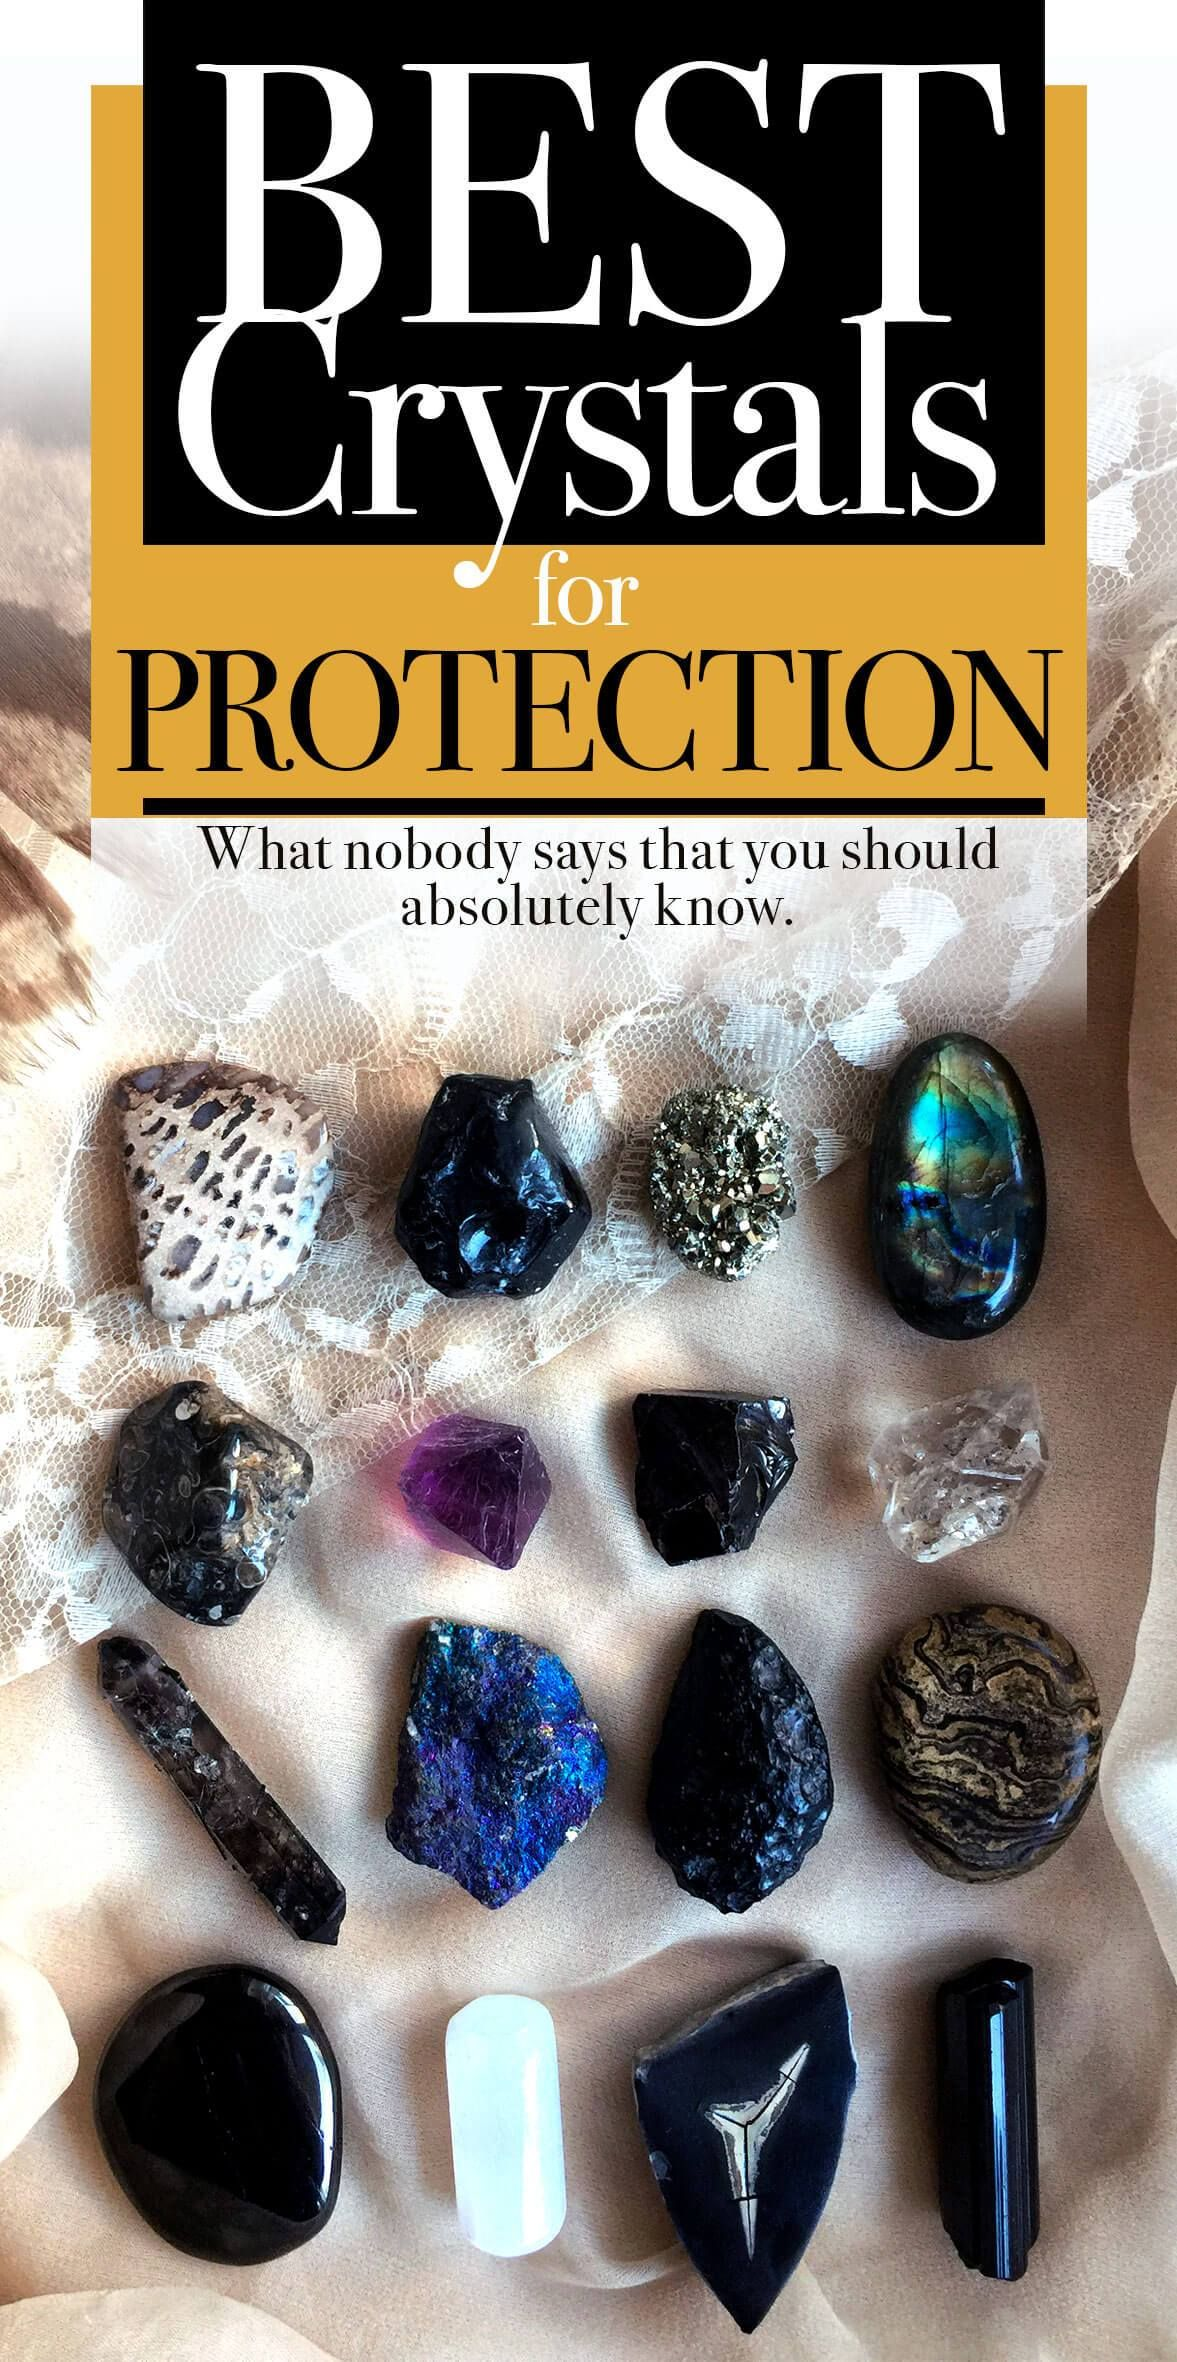 Best crystals stones for protection the true story